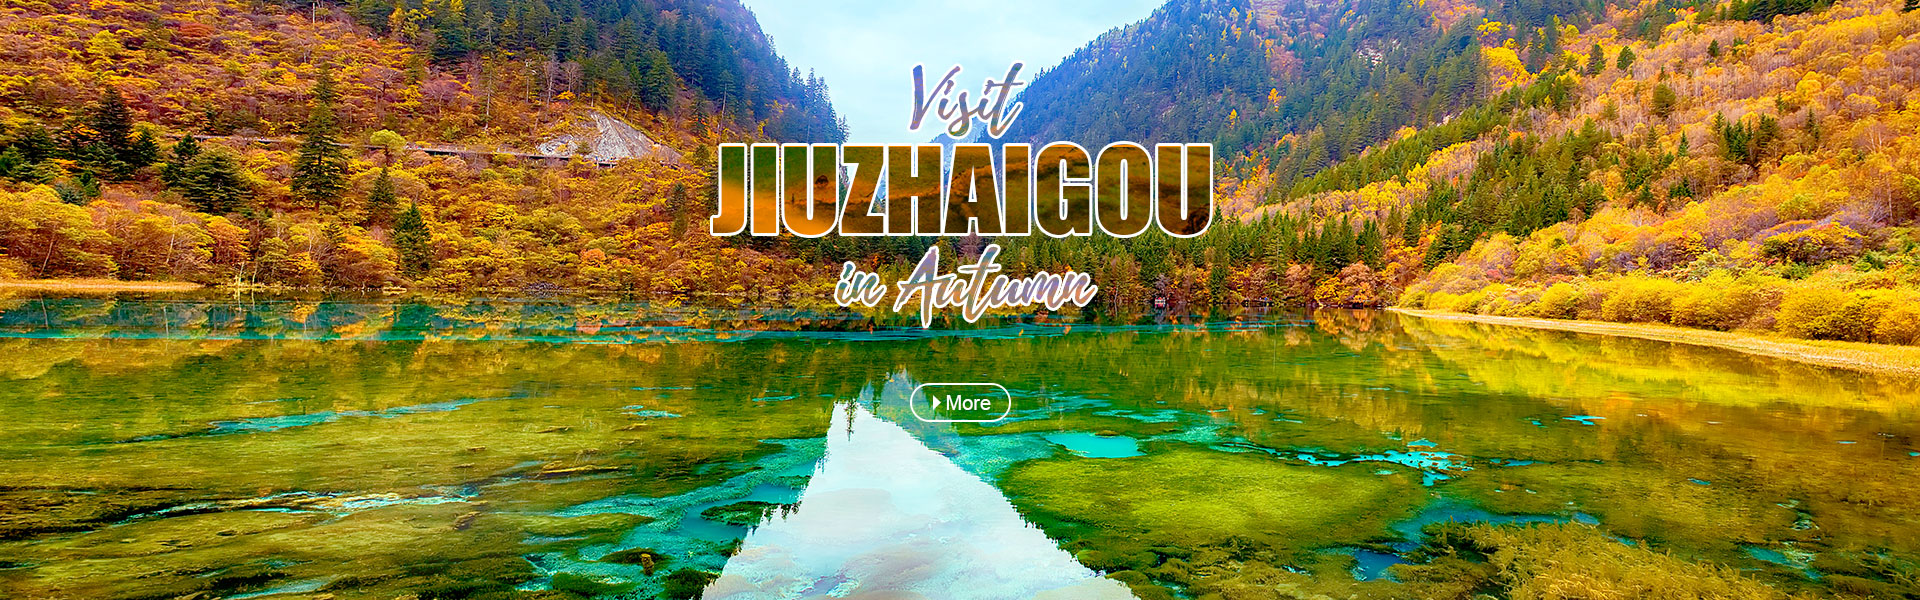 Visit Jiuzhaigou in Autumn-CTA